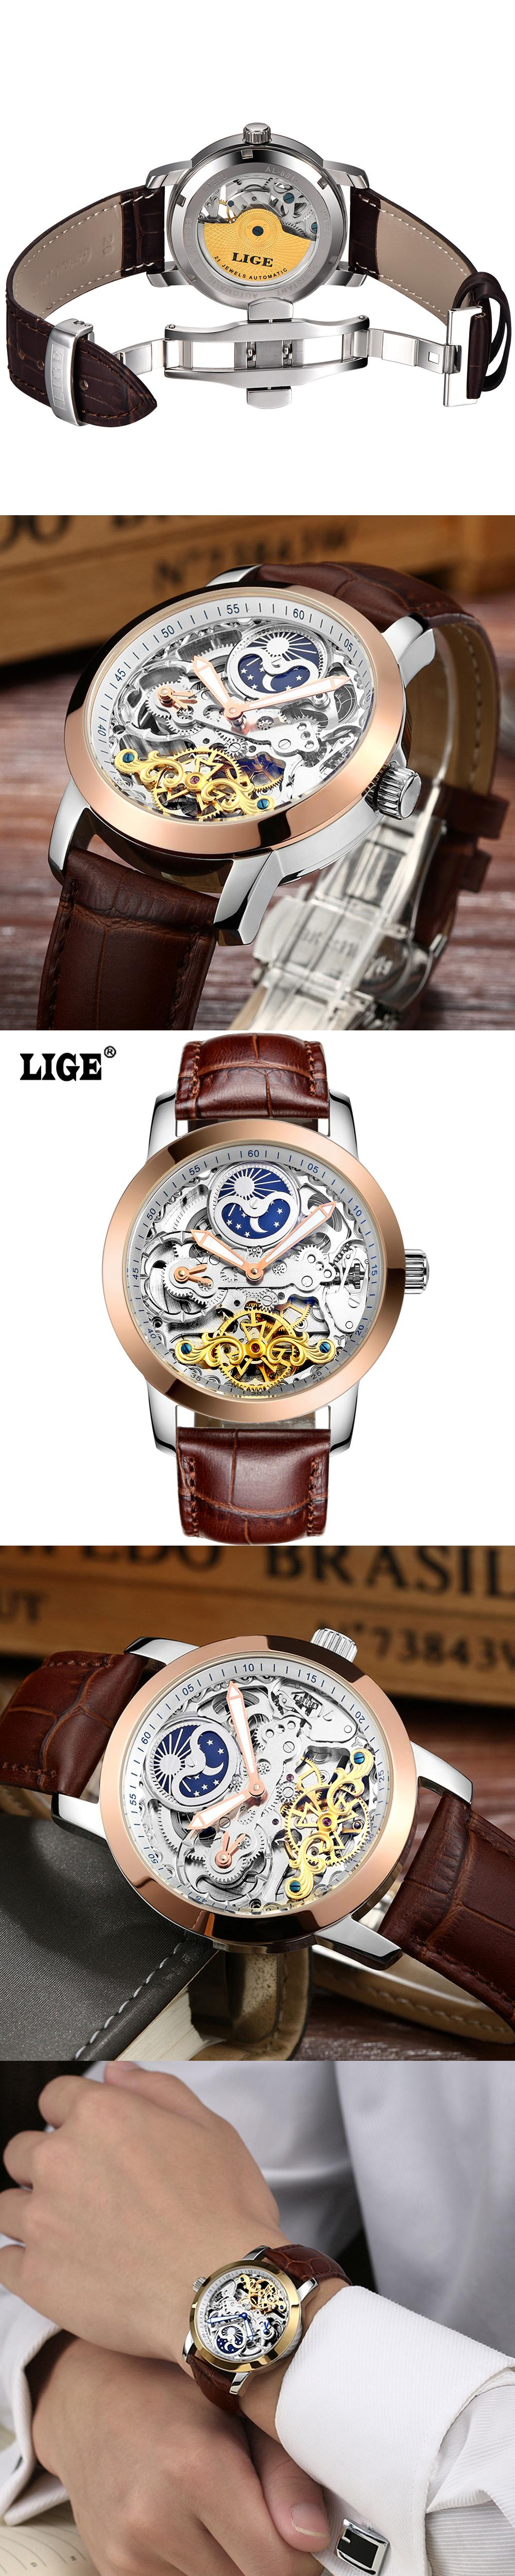 rose gold montmartre chestnut new hot watch blue orange royal with leather watches lige brown auree rg pink strap